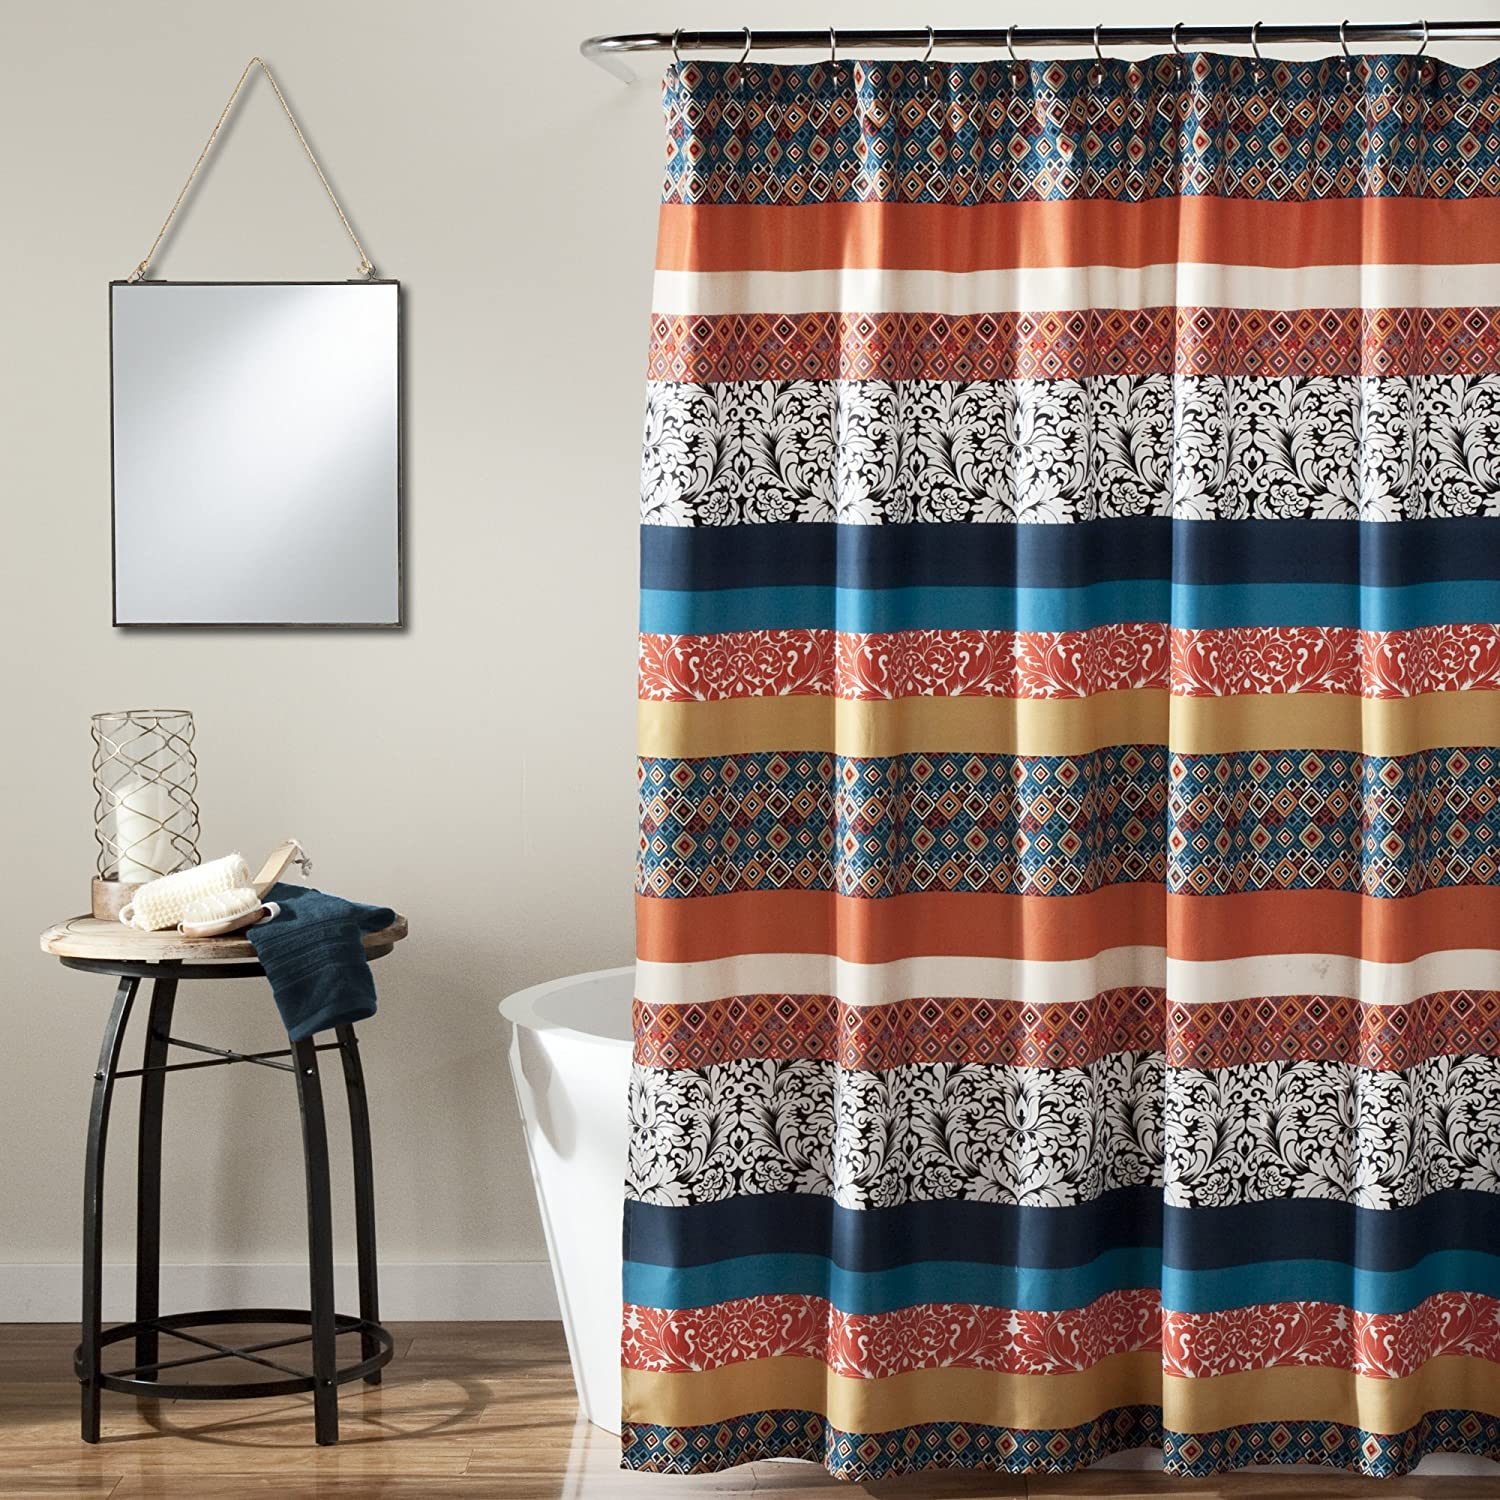 inc company tangerine outdoor jordan manufacturing curtain curtains